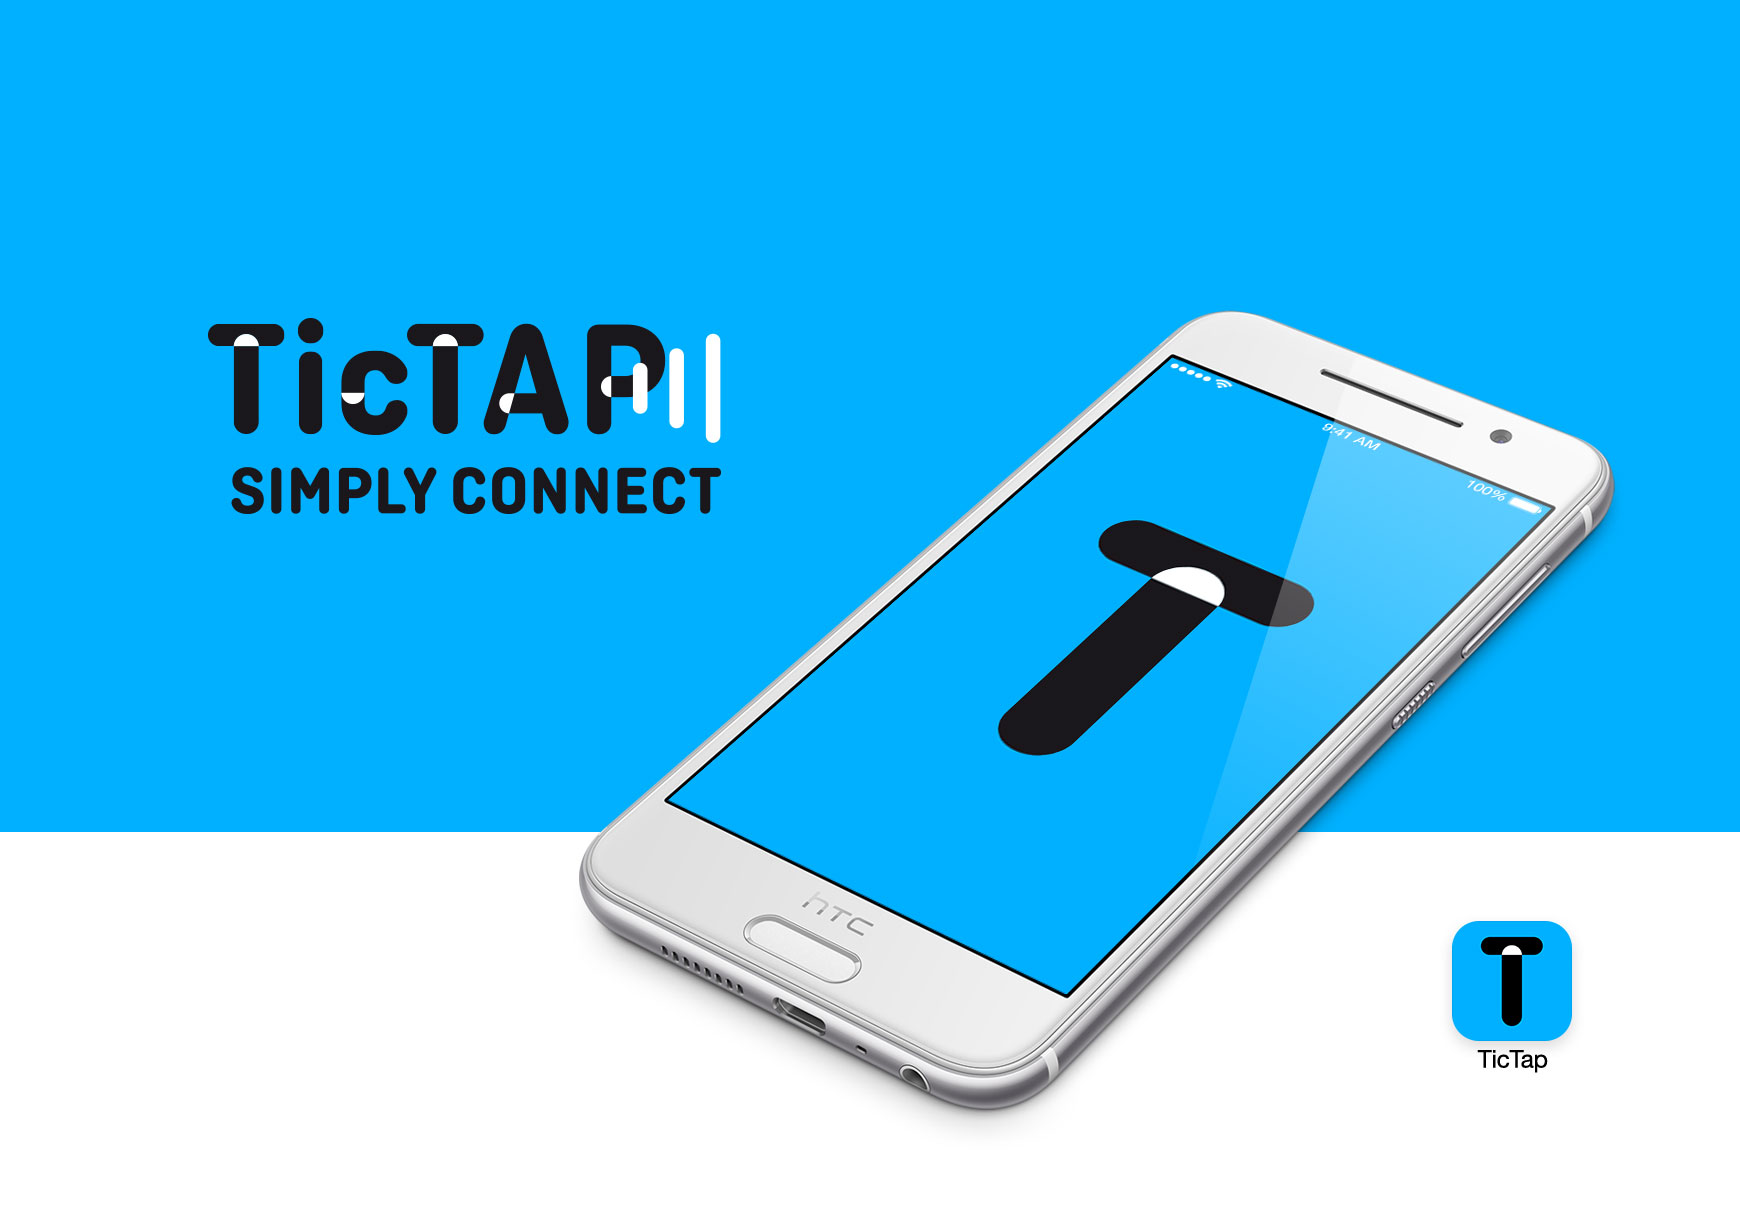 OffCourse TicTap Brand Elements phone icon app NFC